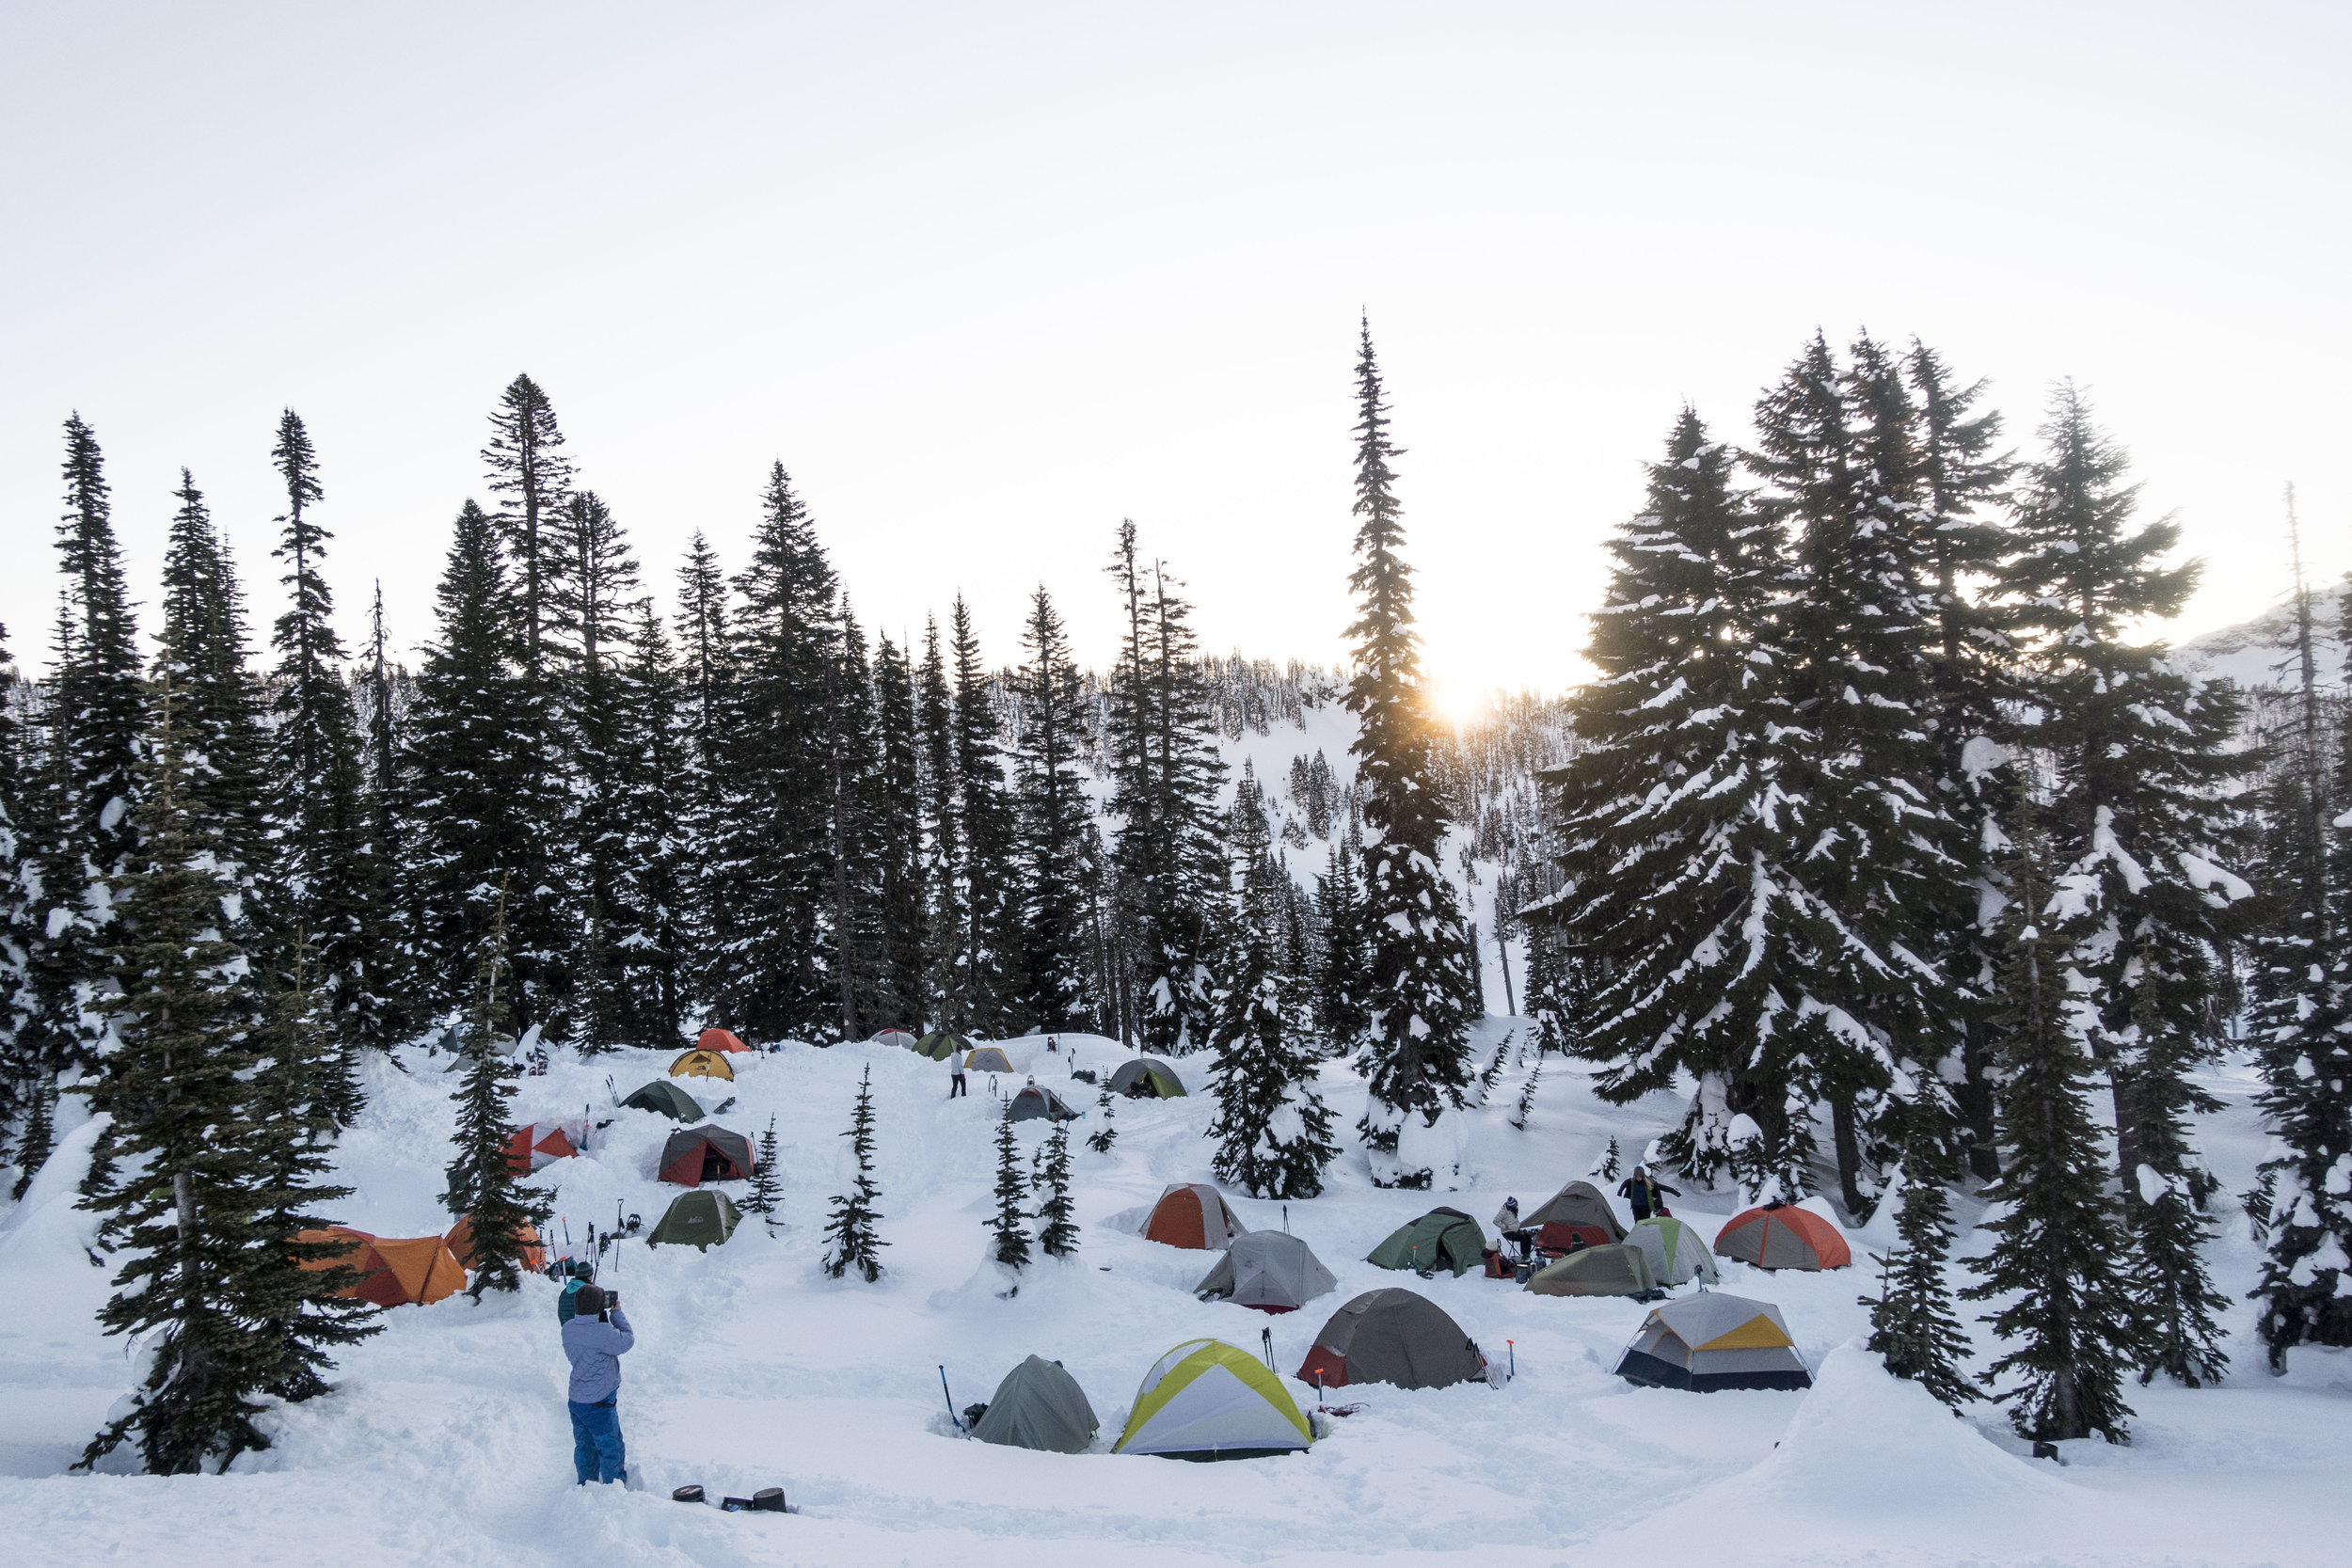 Group site at Paradise, Rainier. Special permit needed for a group of this size.